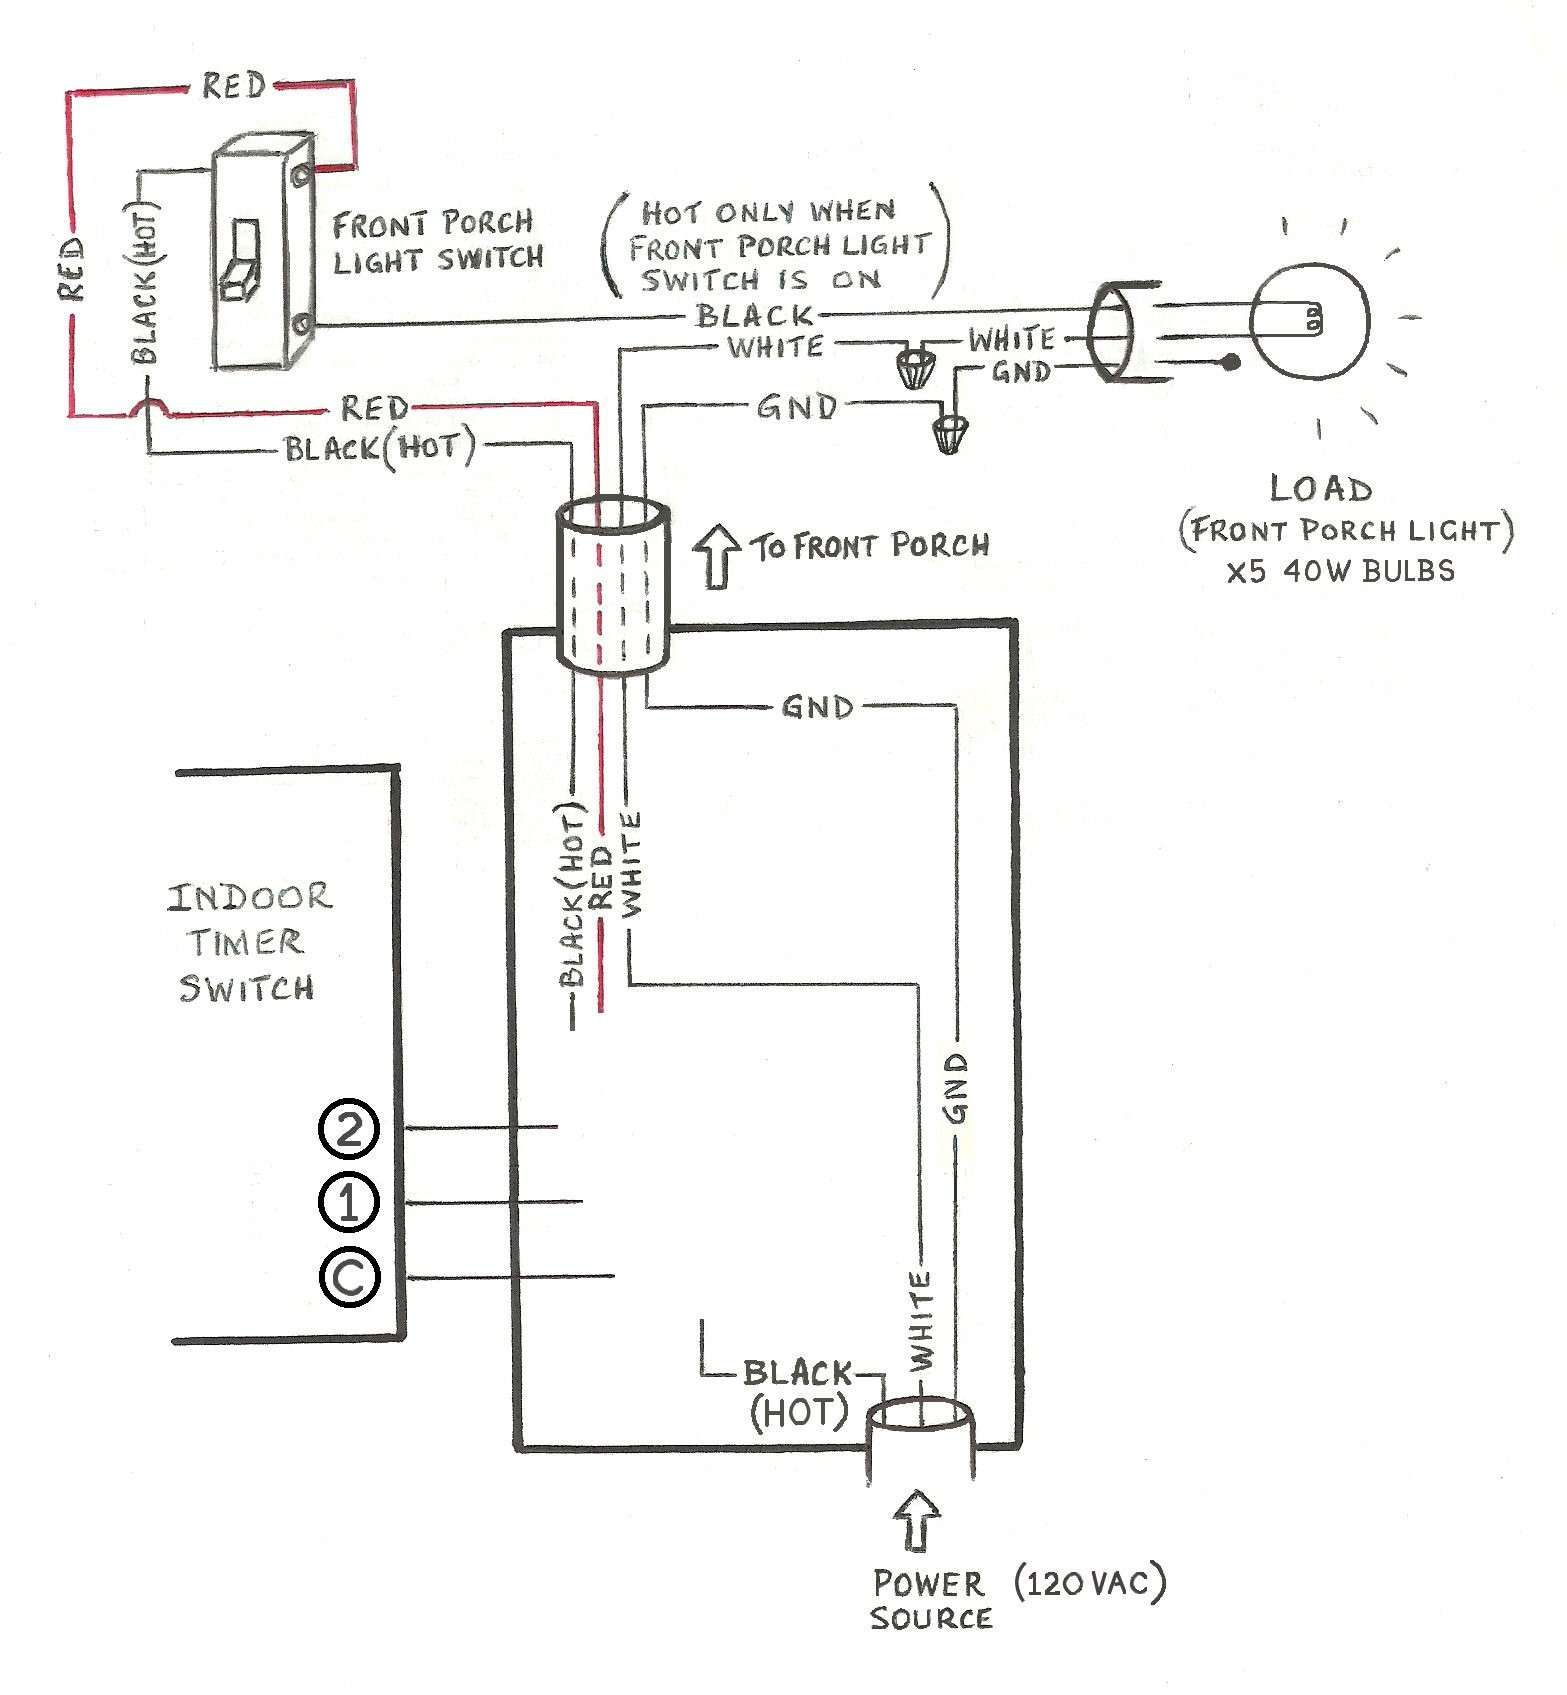 Wiring Diagram 3 Way Switch Beautiful Electrical Timer Switch Wiring Diagram Light Switch Wiring Light Switch Diagram